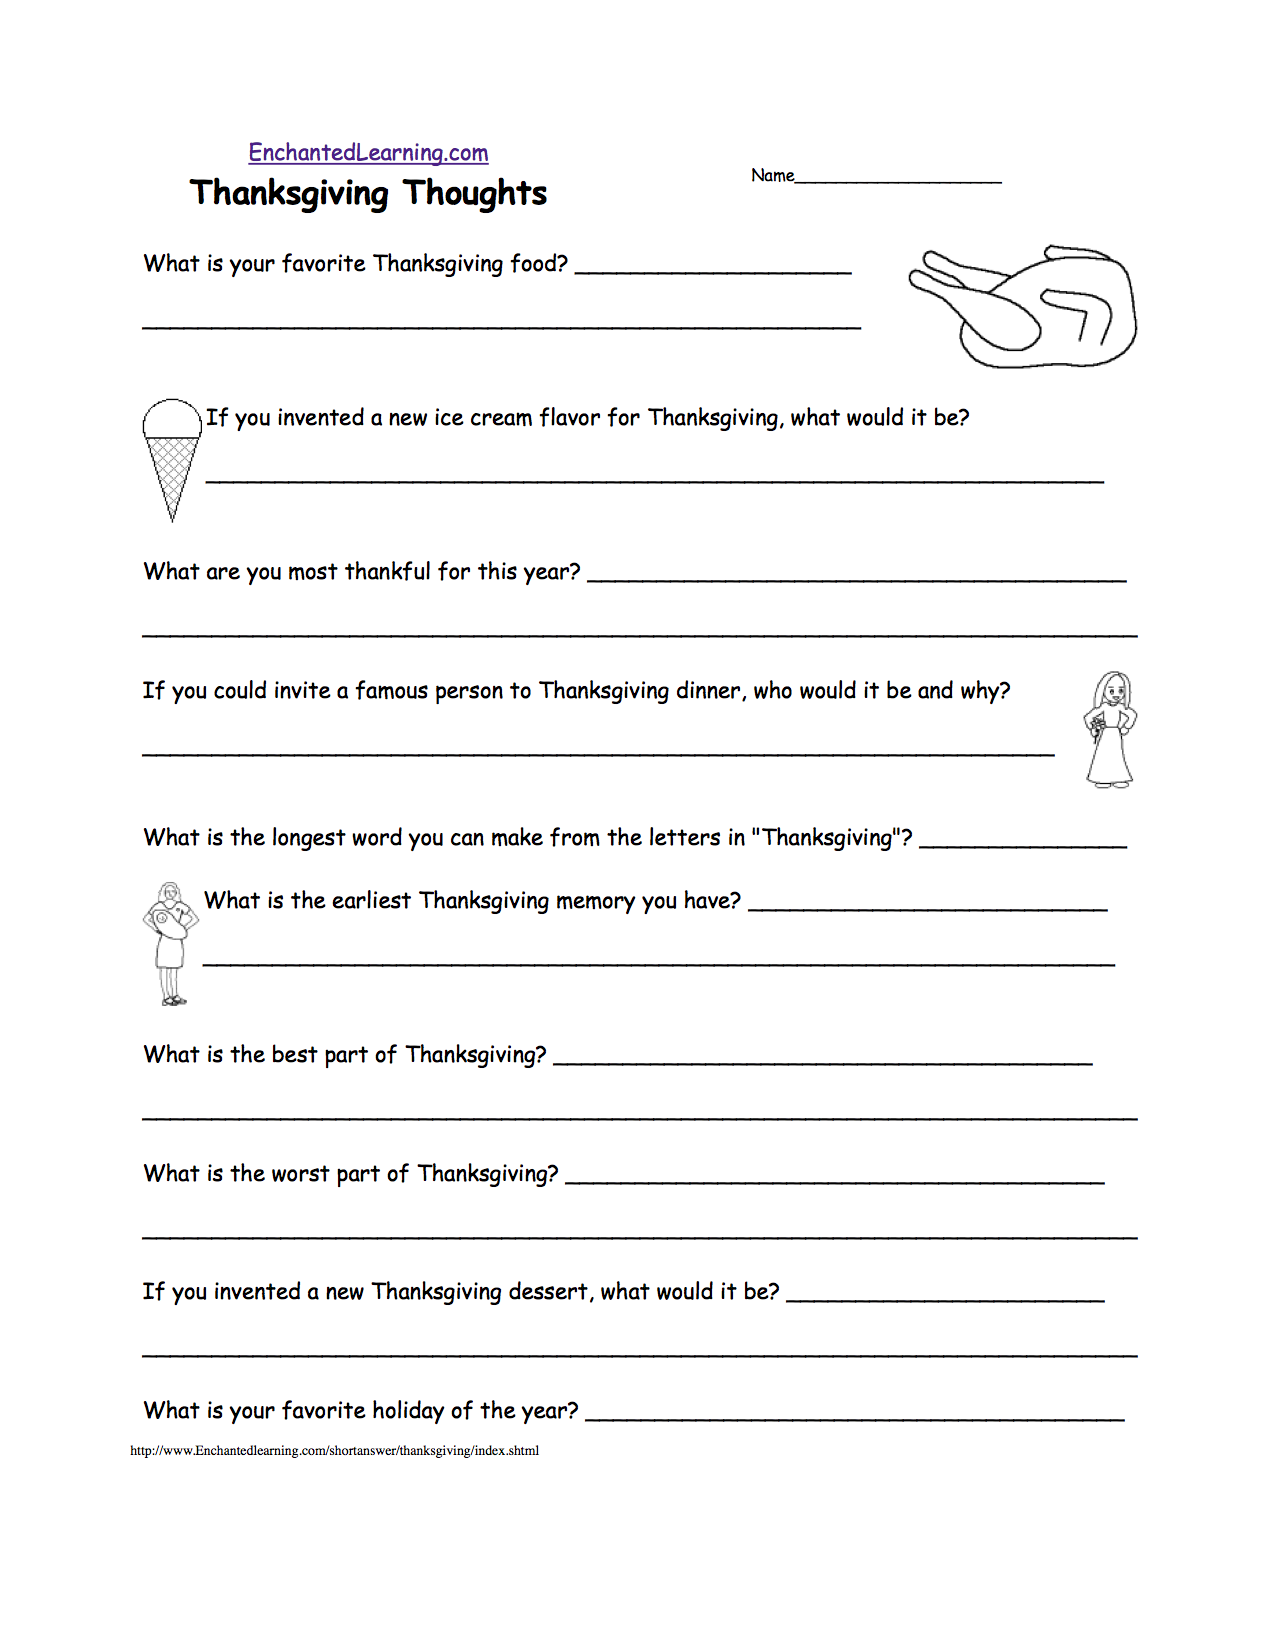 6 Images of Thanksgiving School Printable Papers